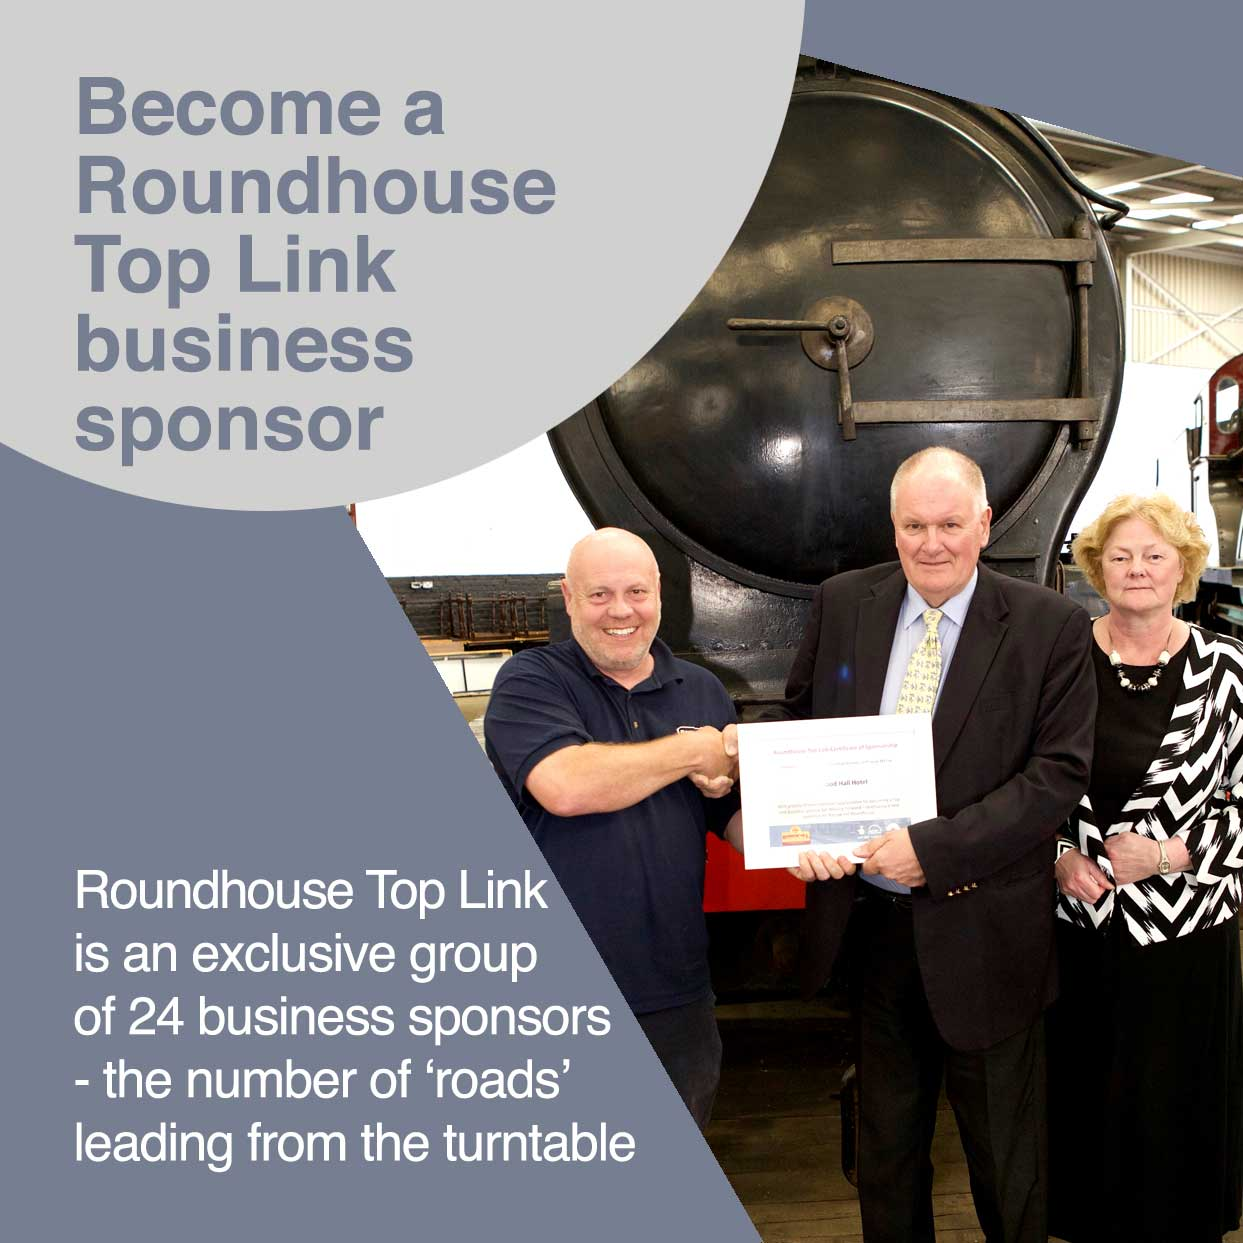 Click here for more information about becoming a Roundhouse Top Link Business Sponsor